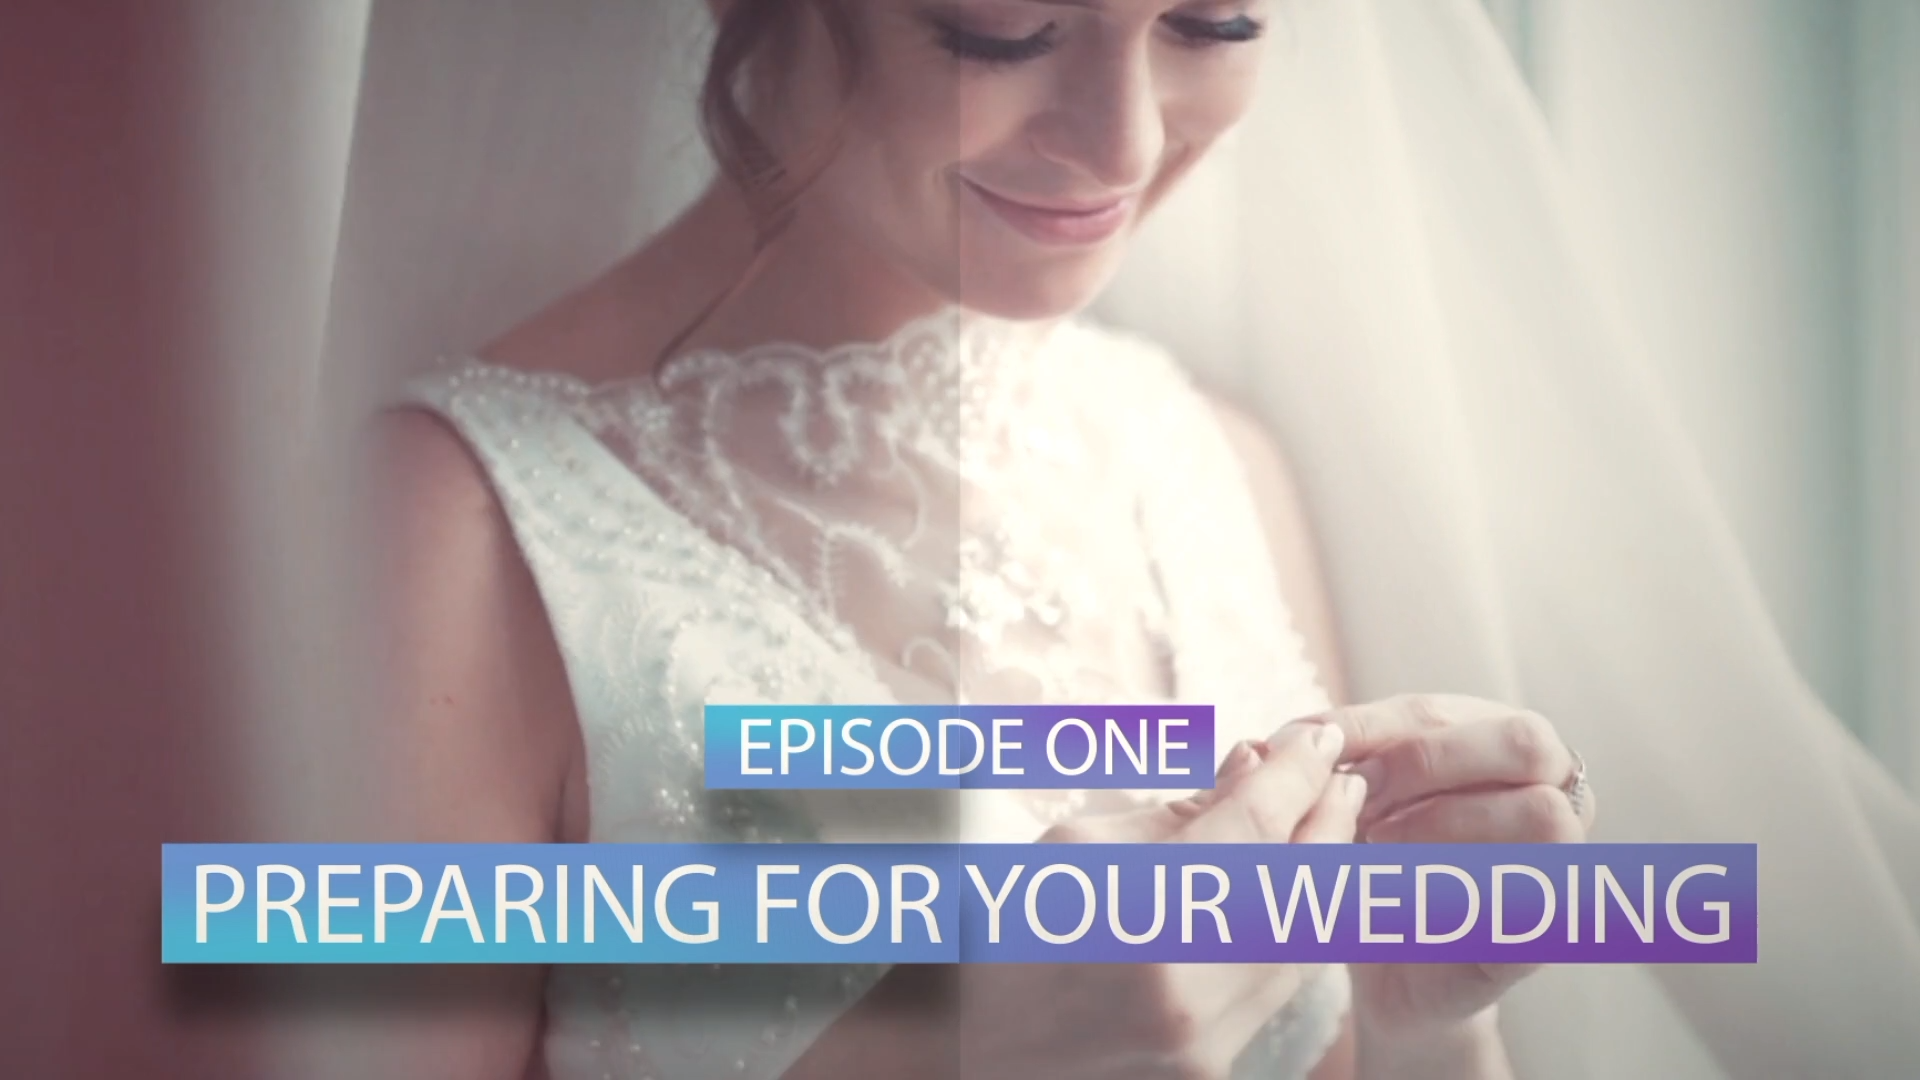 Episode 1 Preparing for your Wedding